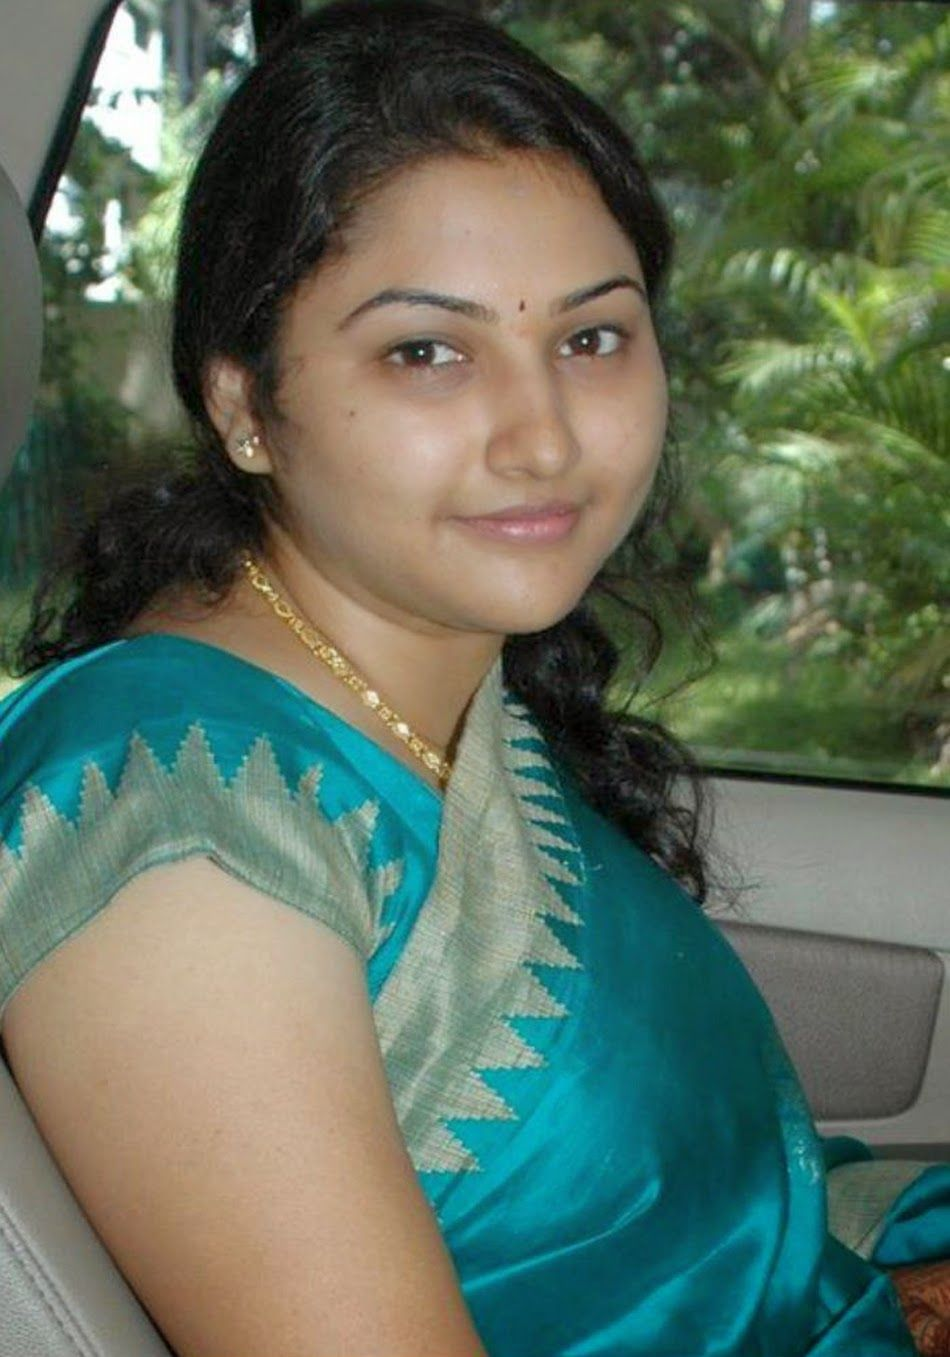 Malayali Girls And Women Mallu Nice Photos Pics Women Desi Indian Girls Aunties Bhabhis And Housewives